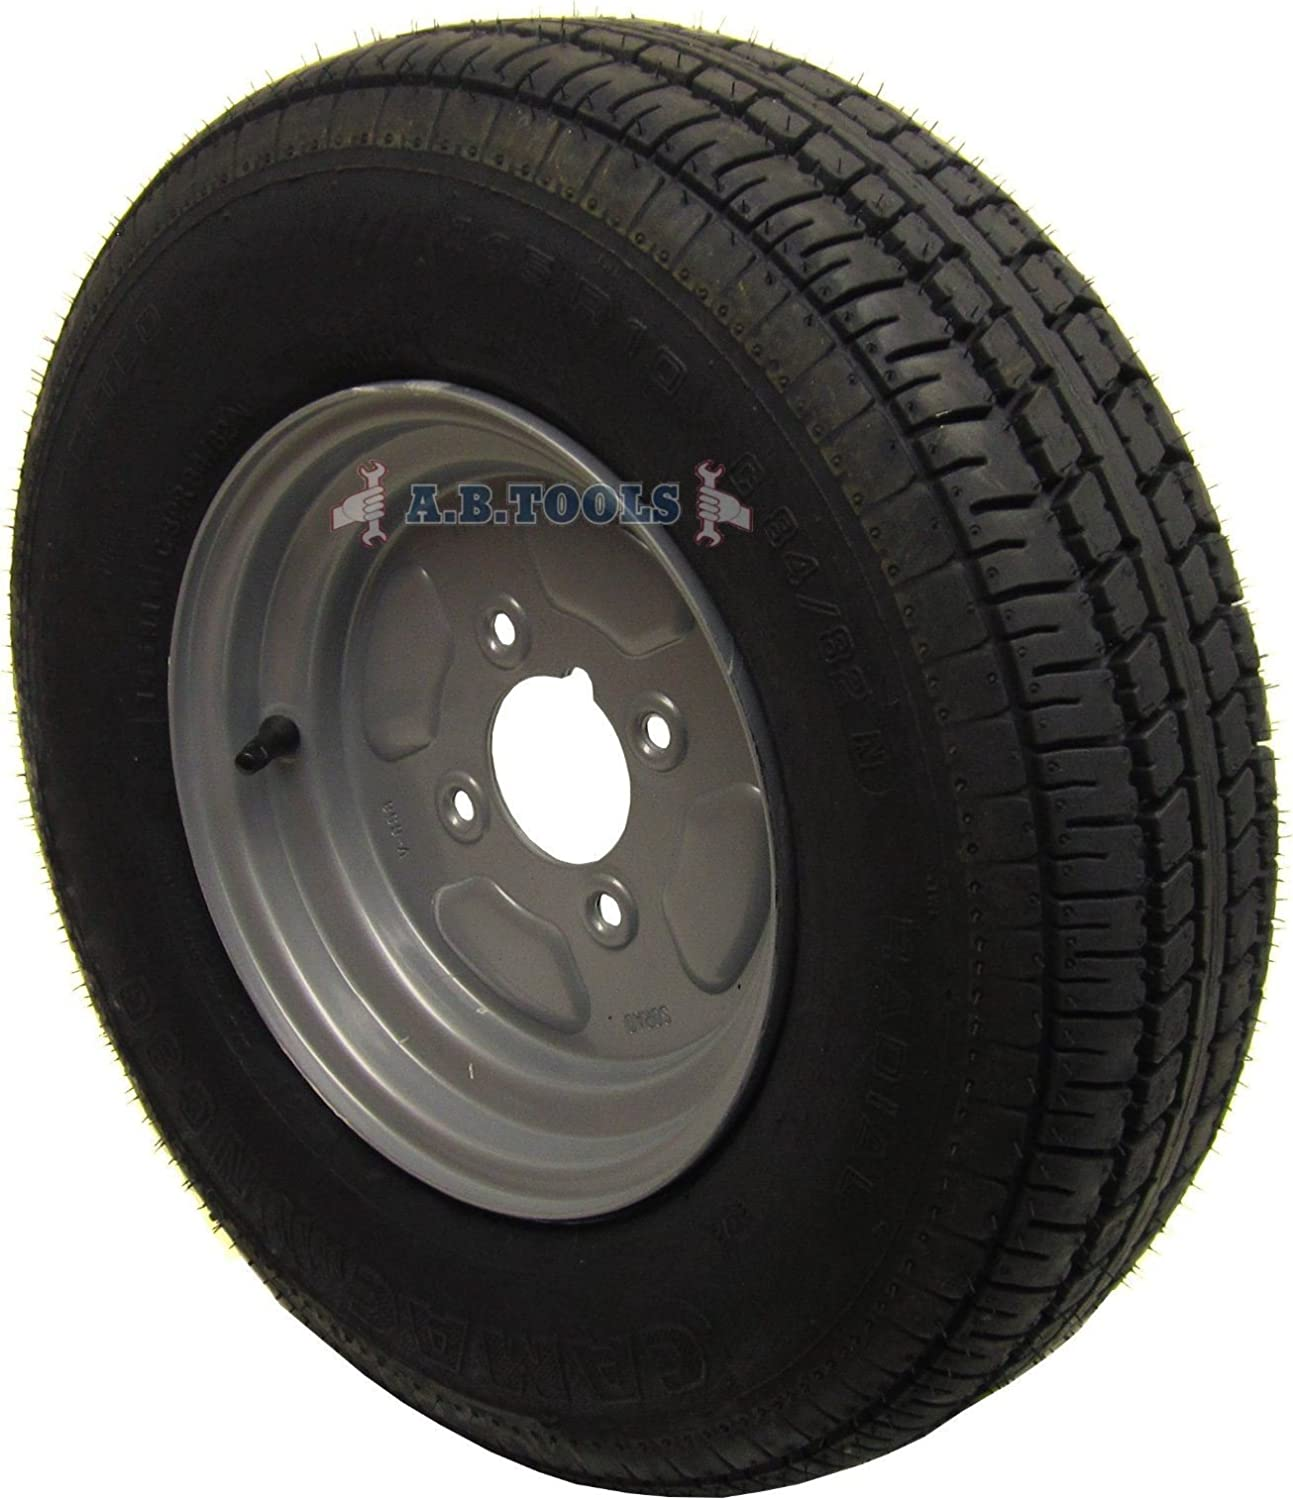 AB depot Tools Trailer Wheel and Tyre 4ply PCD 10 145 Max 76% OFF x 4